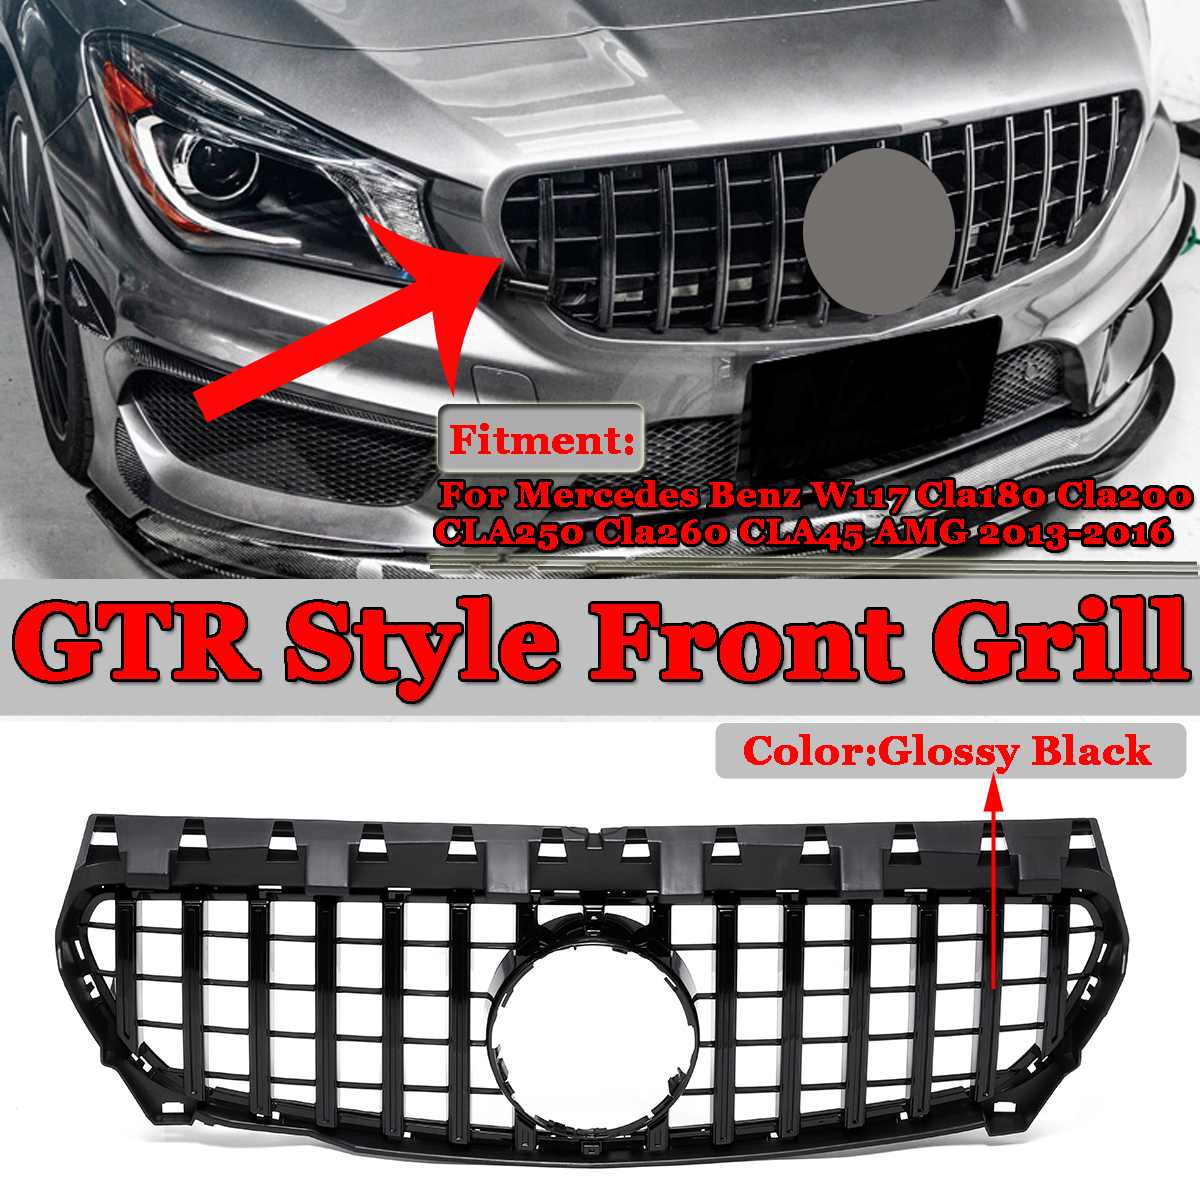 GTR Style Car Front Grille Grill For Mercedes For Benz W117 CLA180 CLA200 CLA250 CLA260 CLA45 For AMG 2013 2016/2017 2018